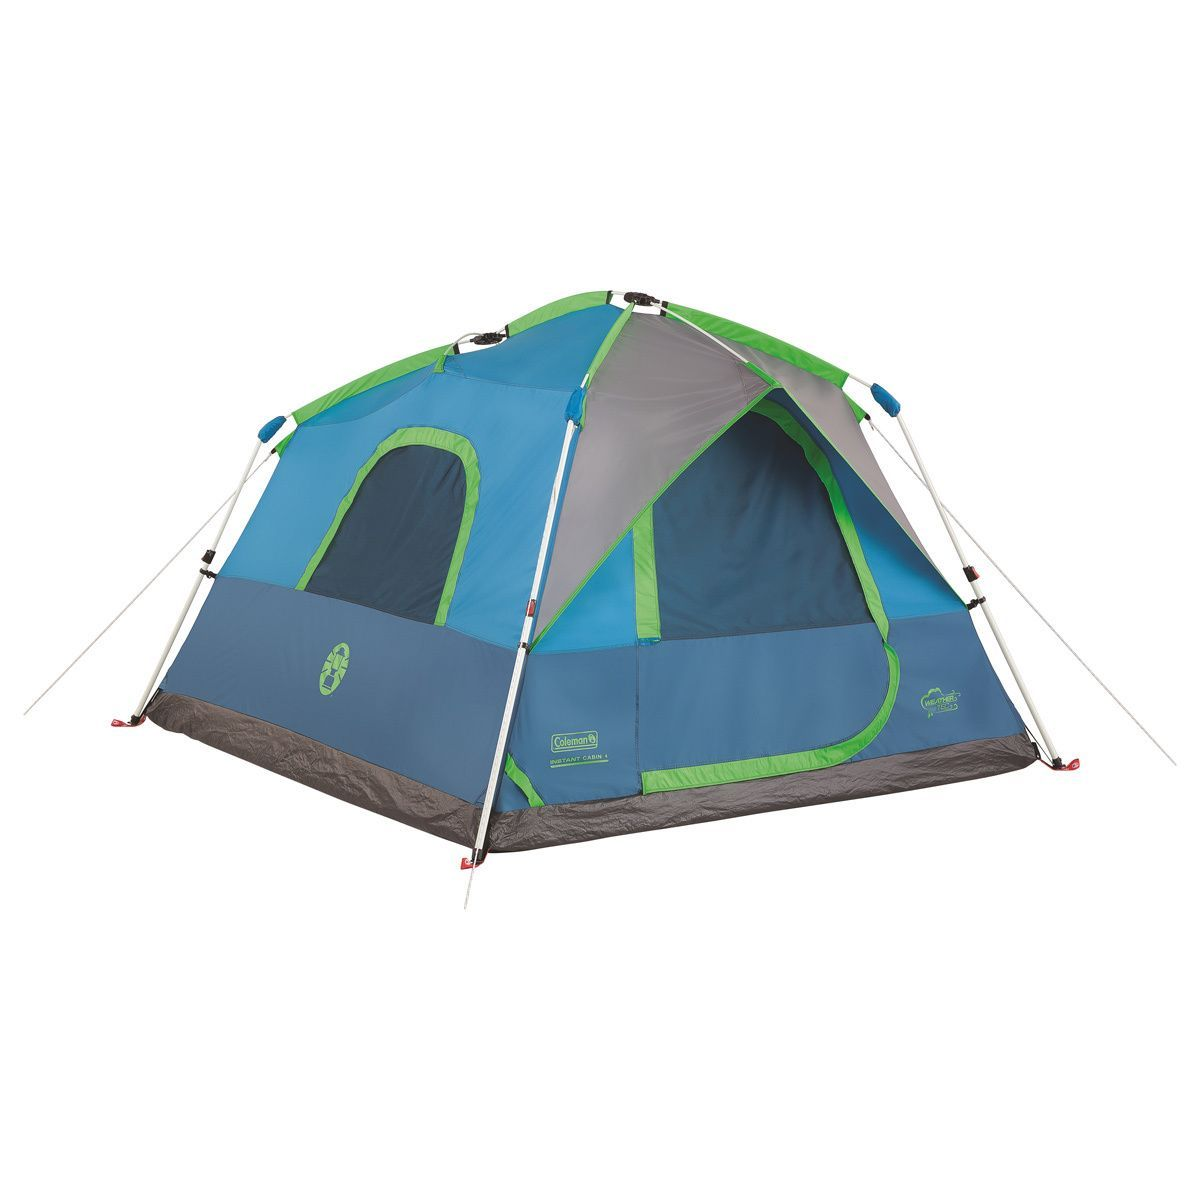 Coleman Tent 4P Instant Signal Mountain Black  sc 1 st  Pinterest & Coleman Tent 4P Instant Signal Mountain Black | Products ...